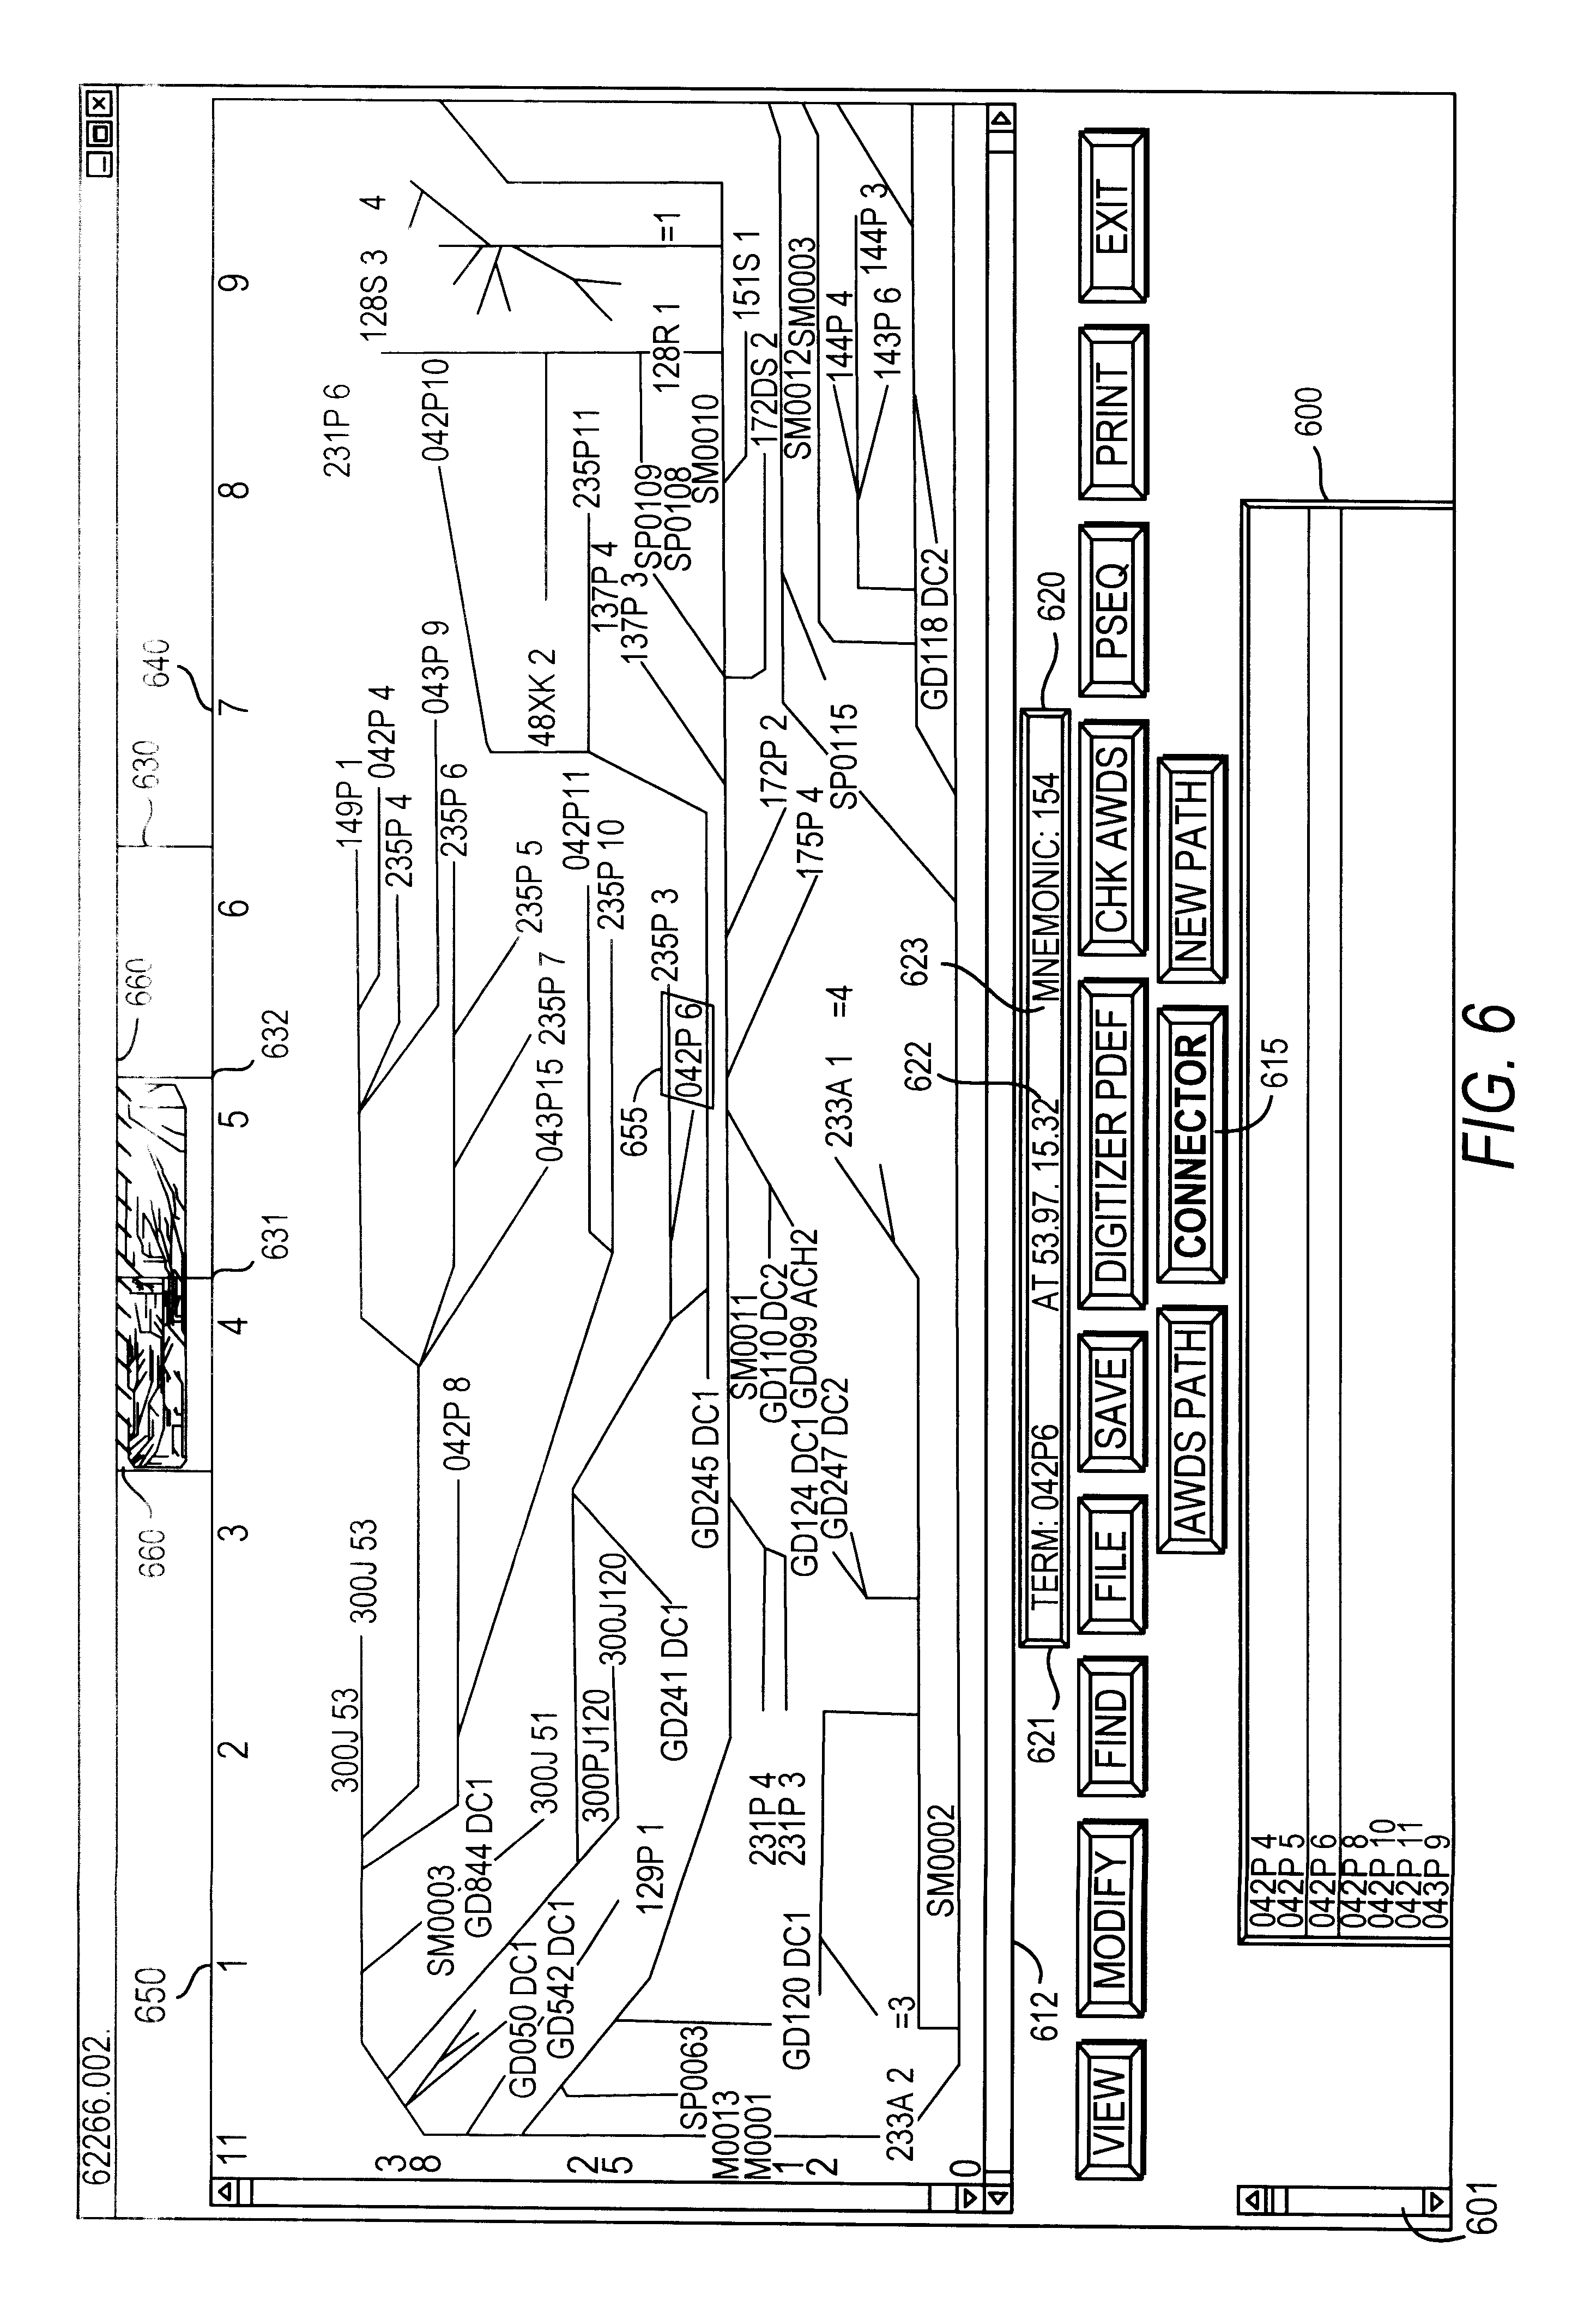 patent us6272387 wire harness system google patents patent drawing